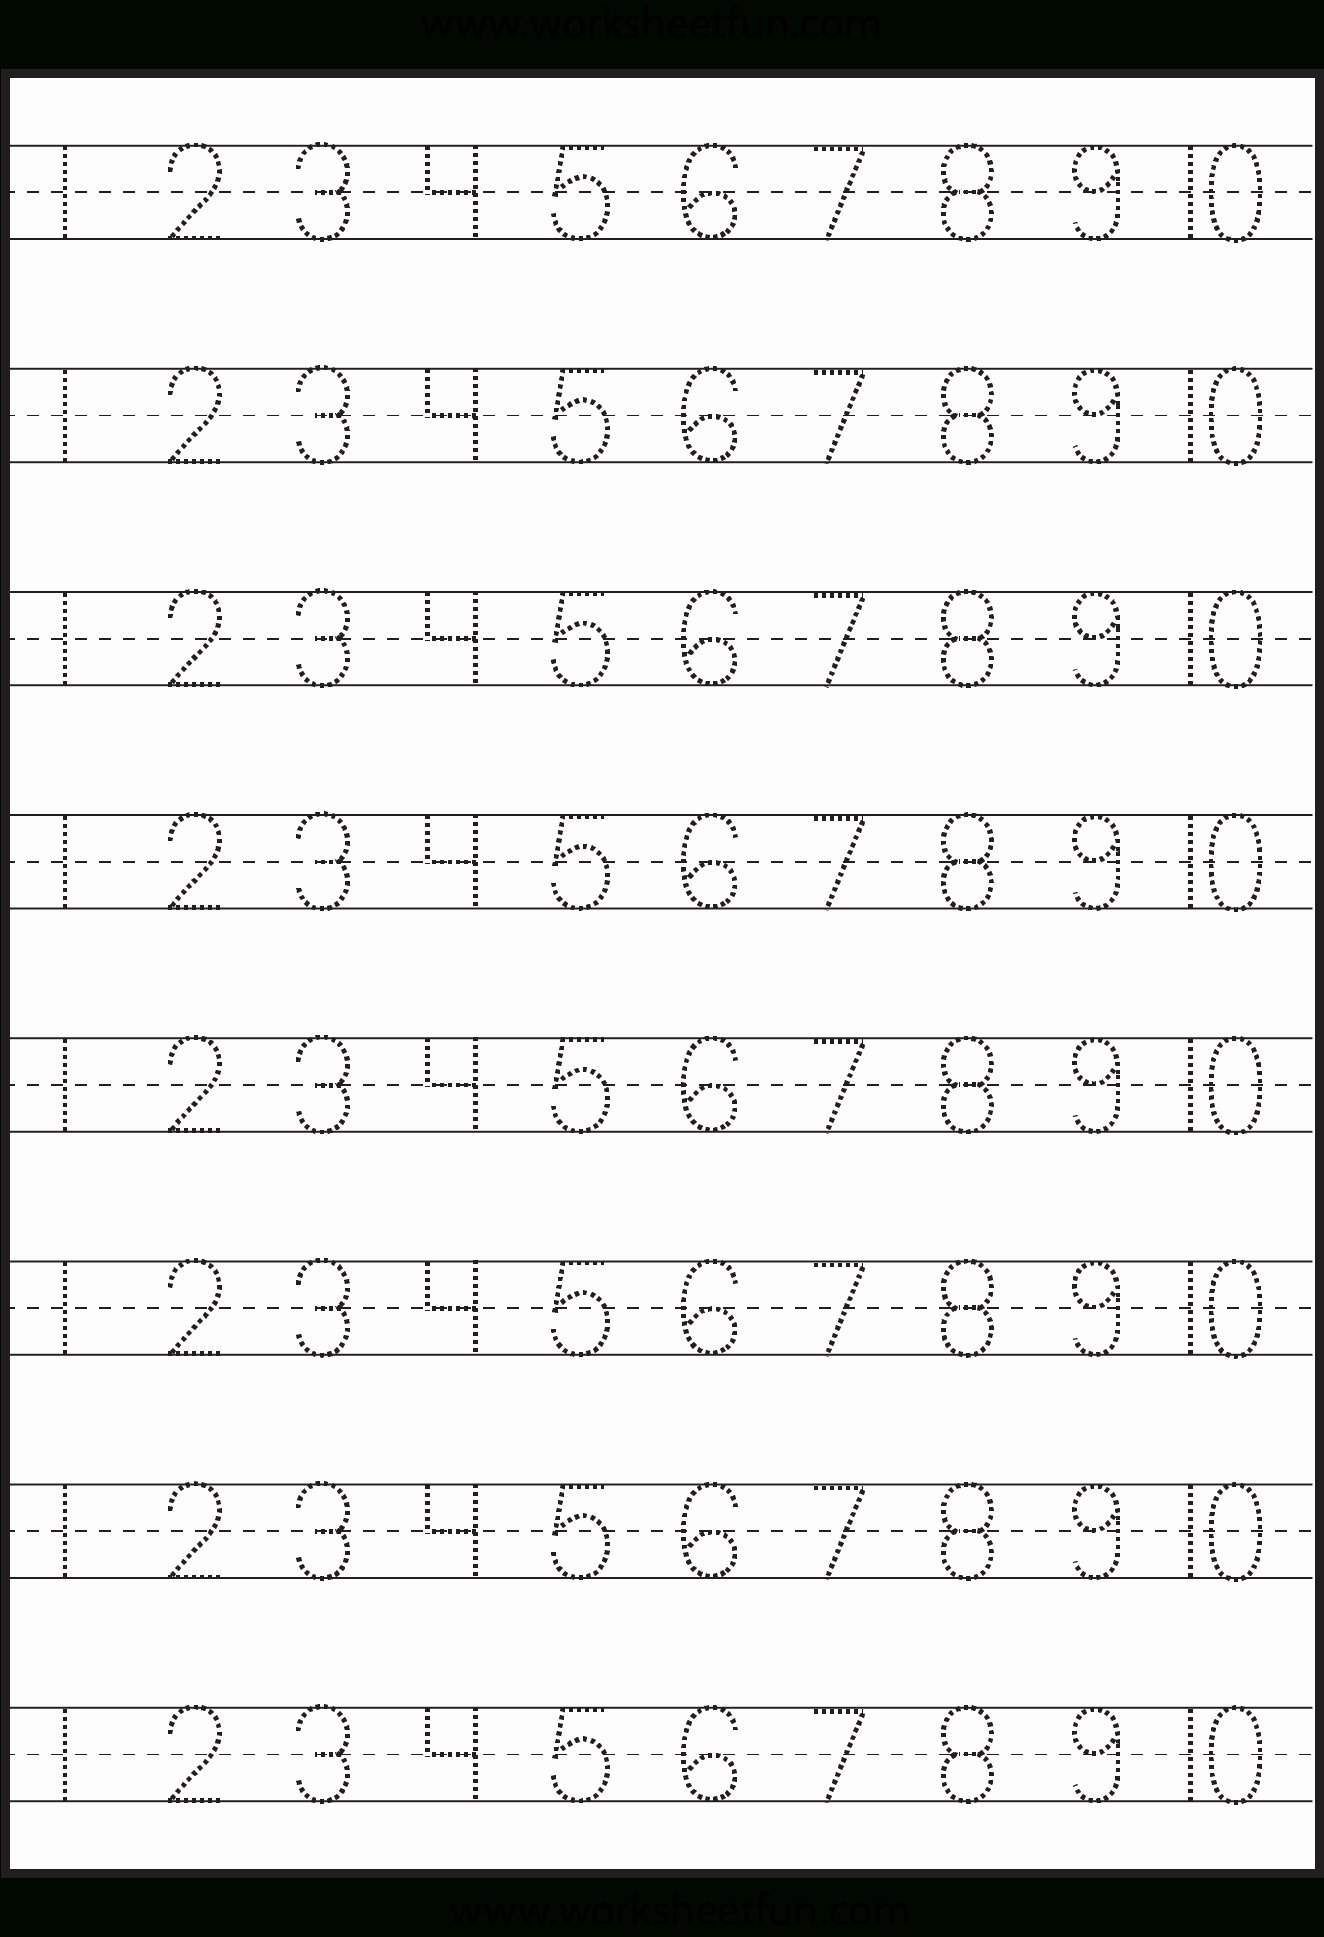 Worksheets for Preschoolers Numbers Awesome Worksheets Kingandsullivan Writing Numbers assessment